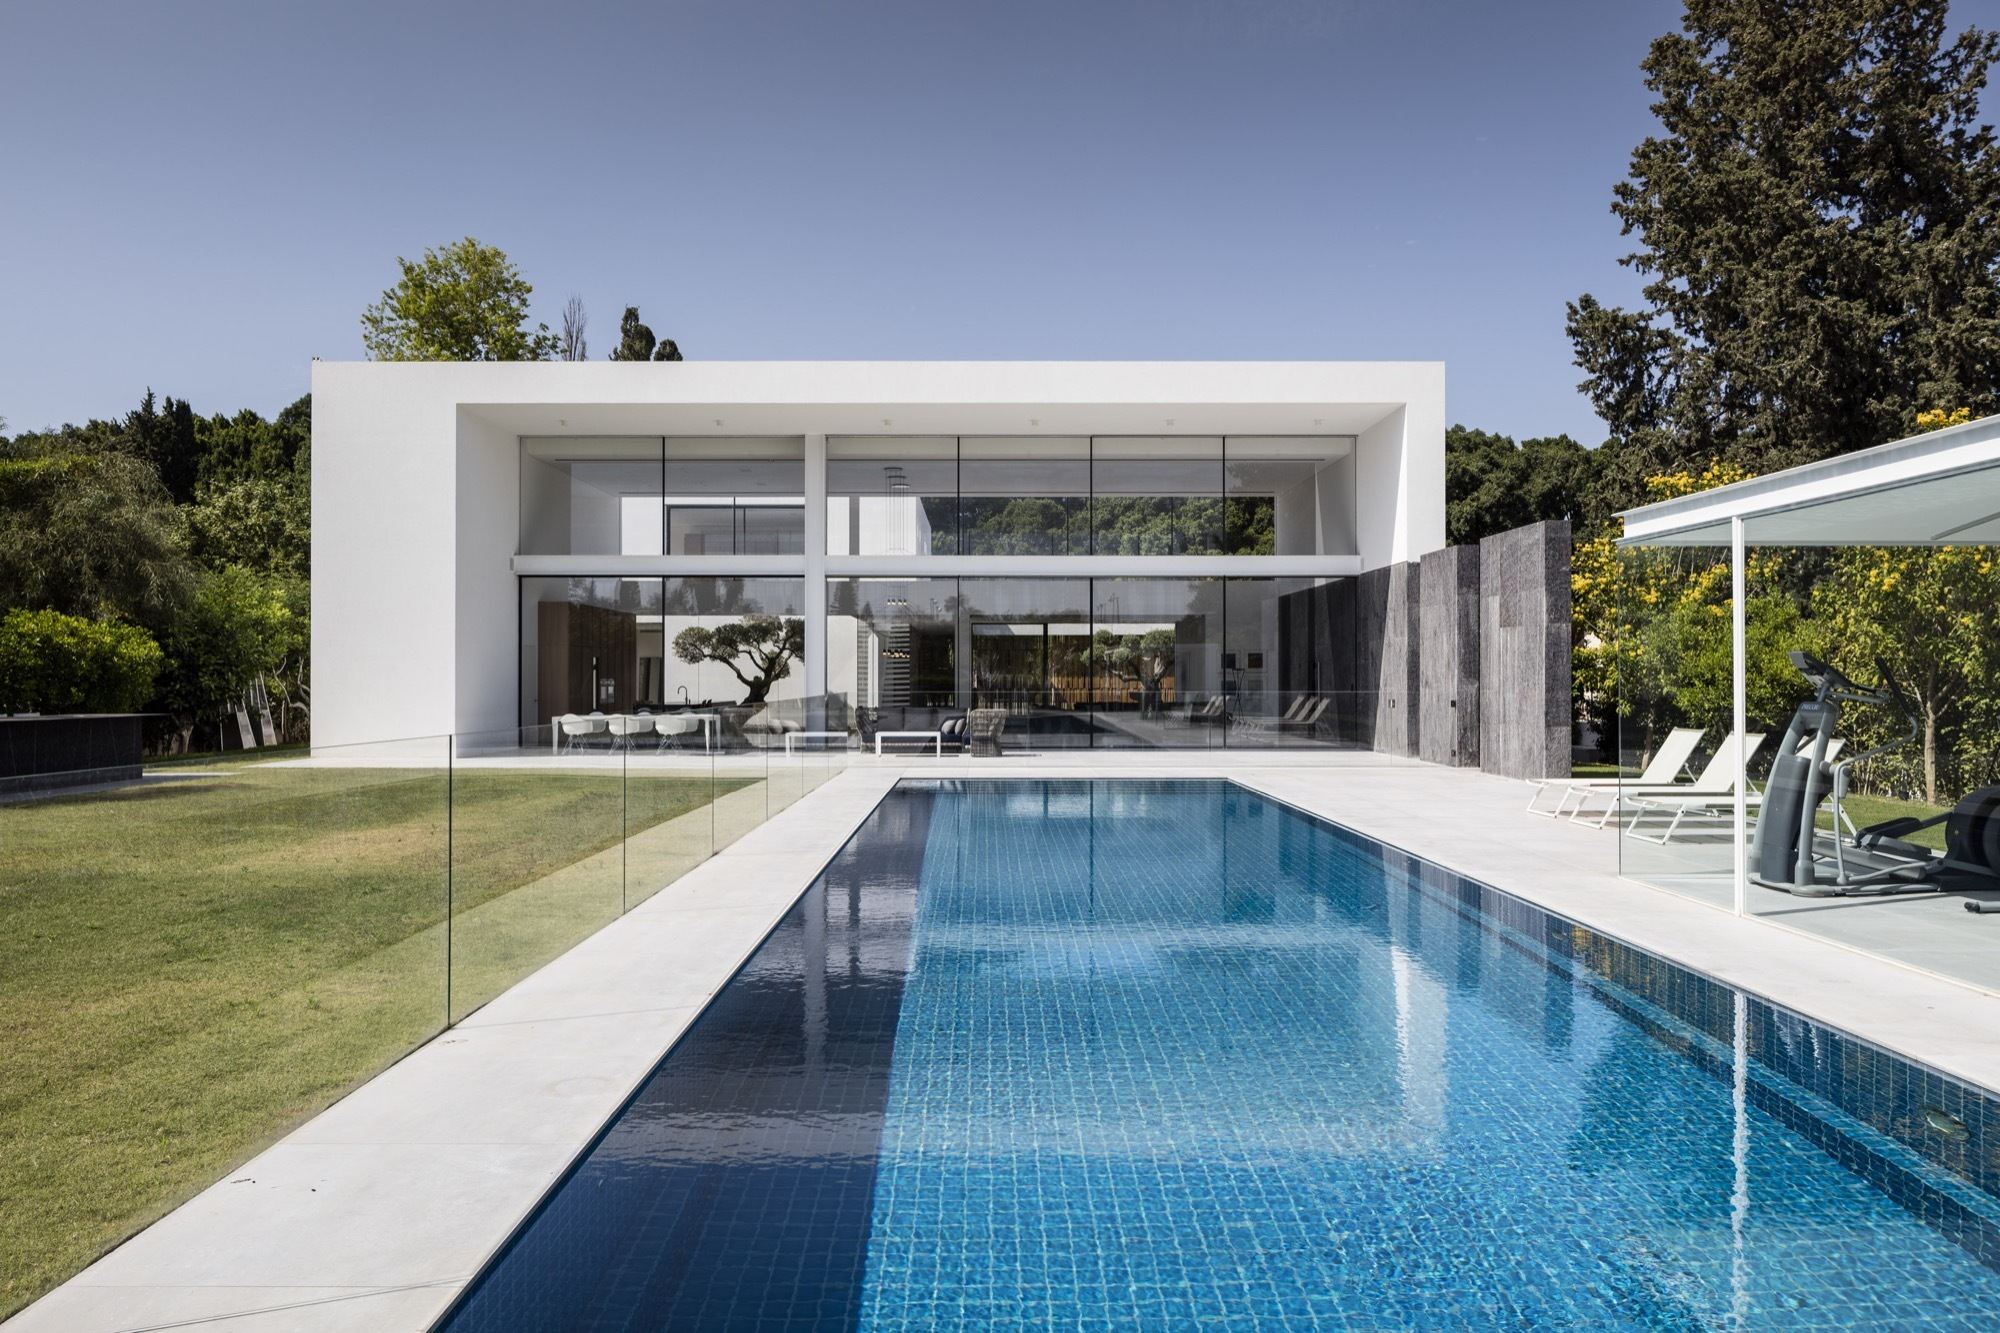 F house pitsou kedem architects archdaily for Casa modernas